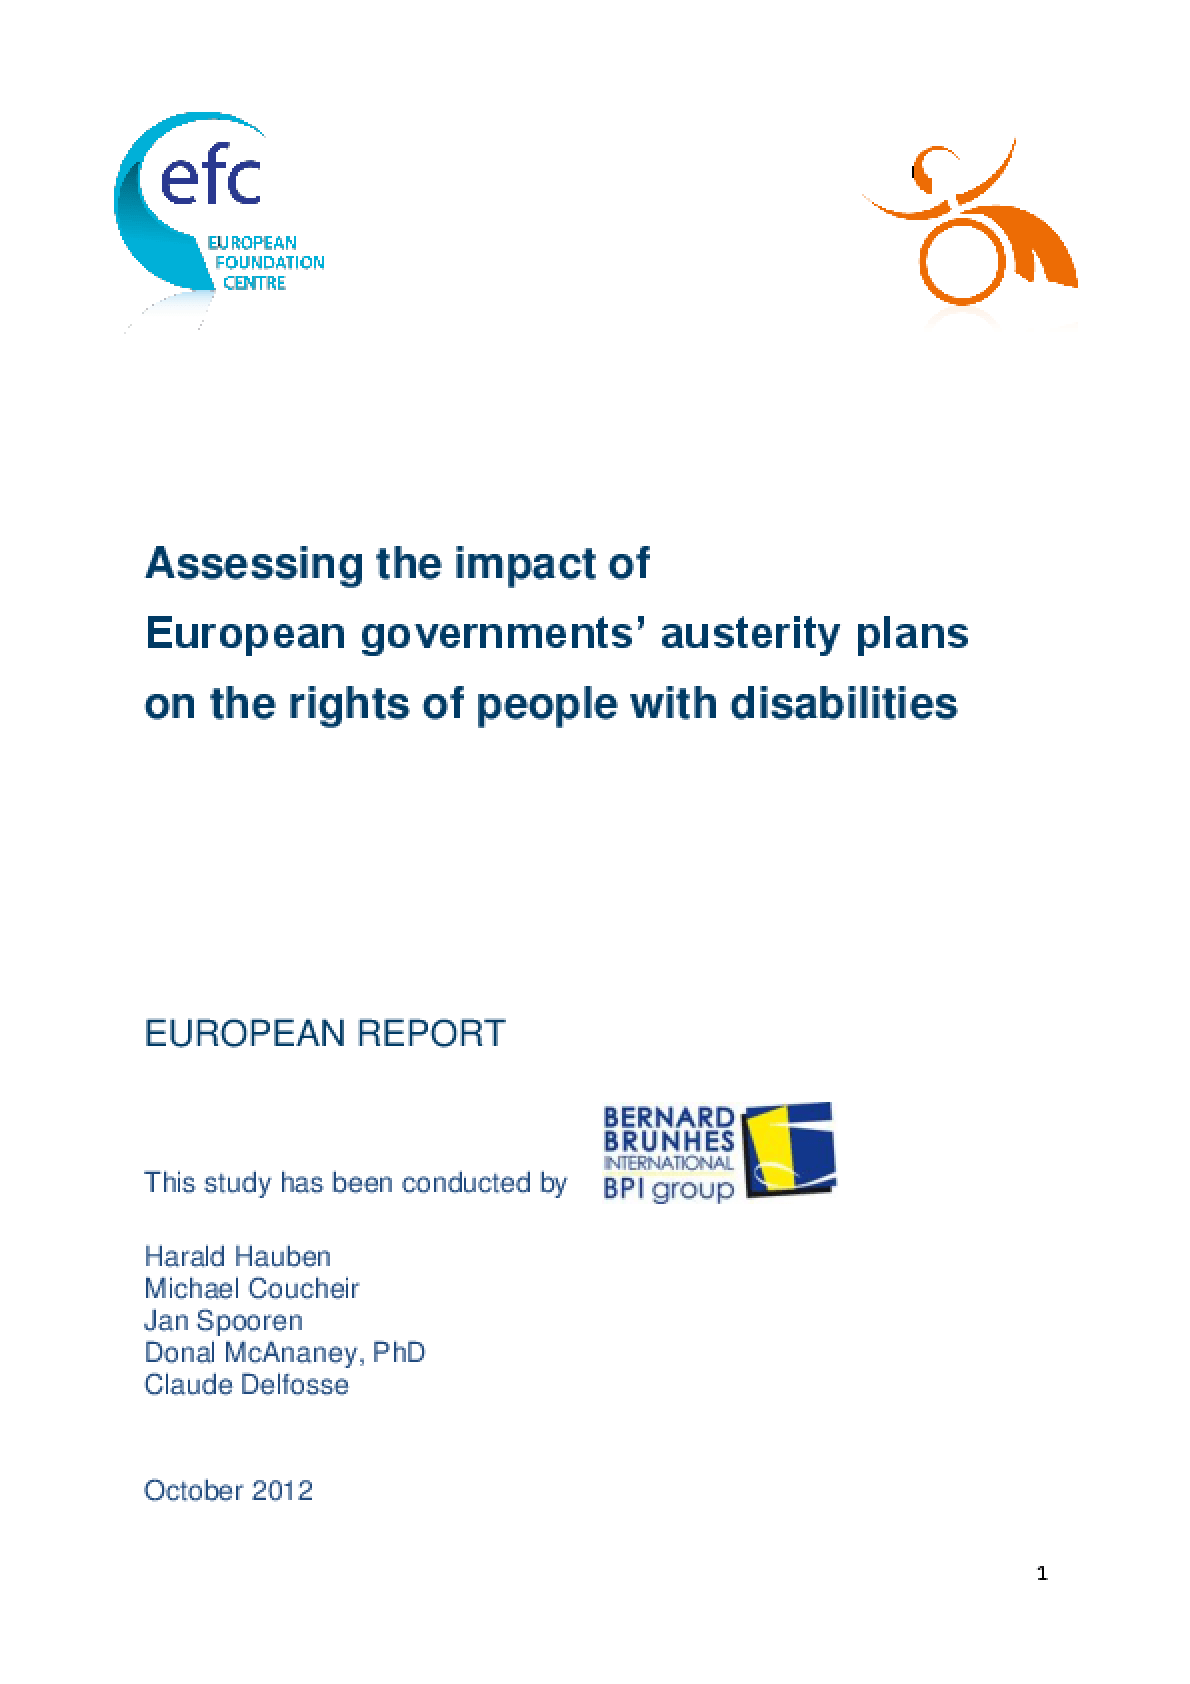 Assessing the Impact of European Governments' Austerity Plans on the Rights of People with Disabilities